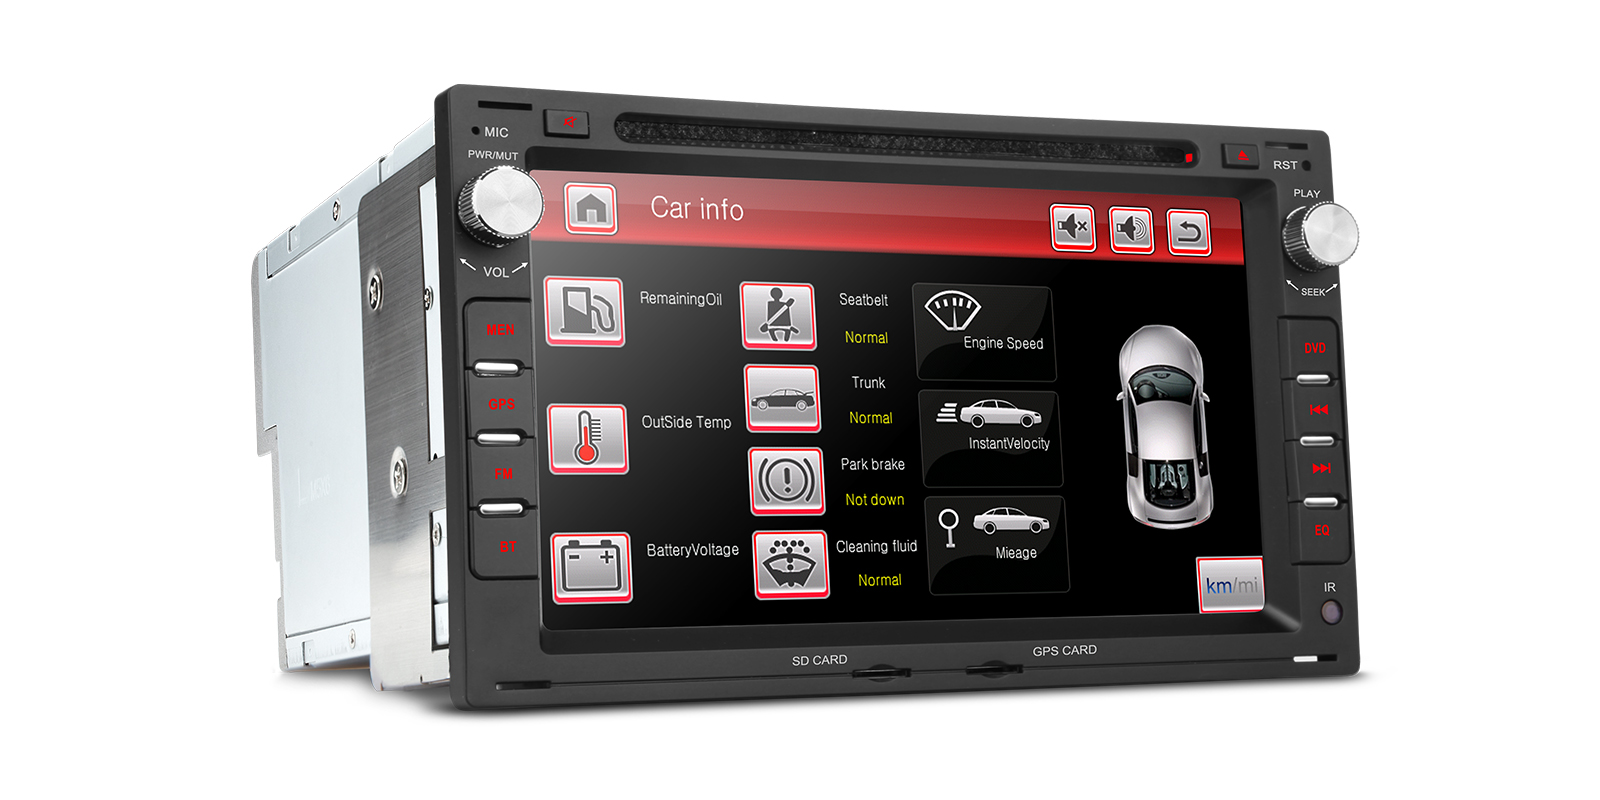 7 Hd Digital Touch Screen Dual Canbus Gps Navigator Car Dvd Player Vauxhall Can Bus Wiring Prevnext